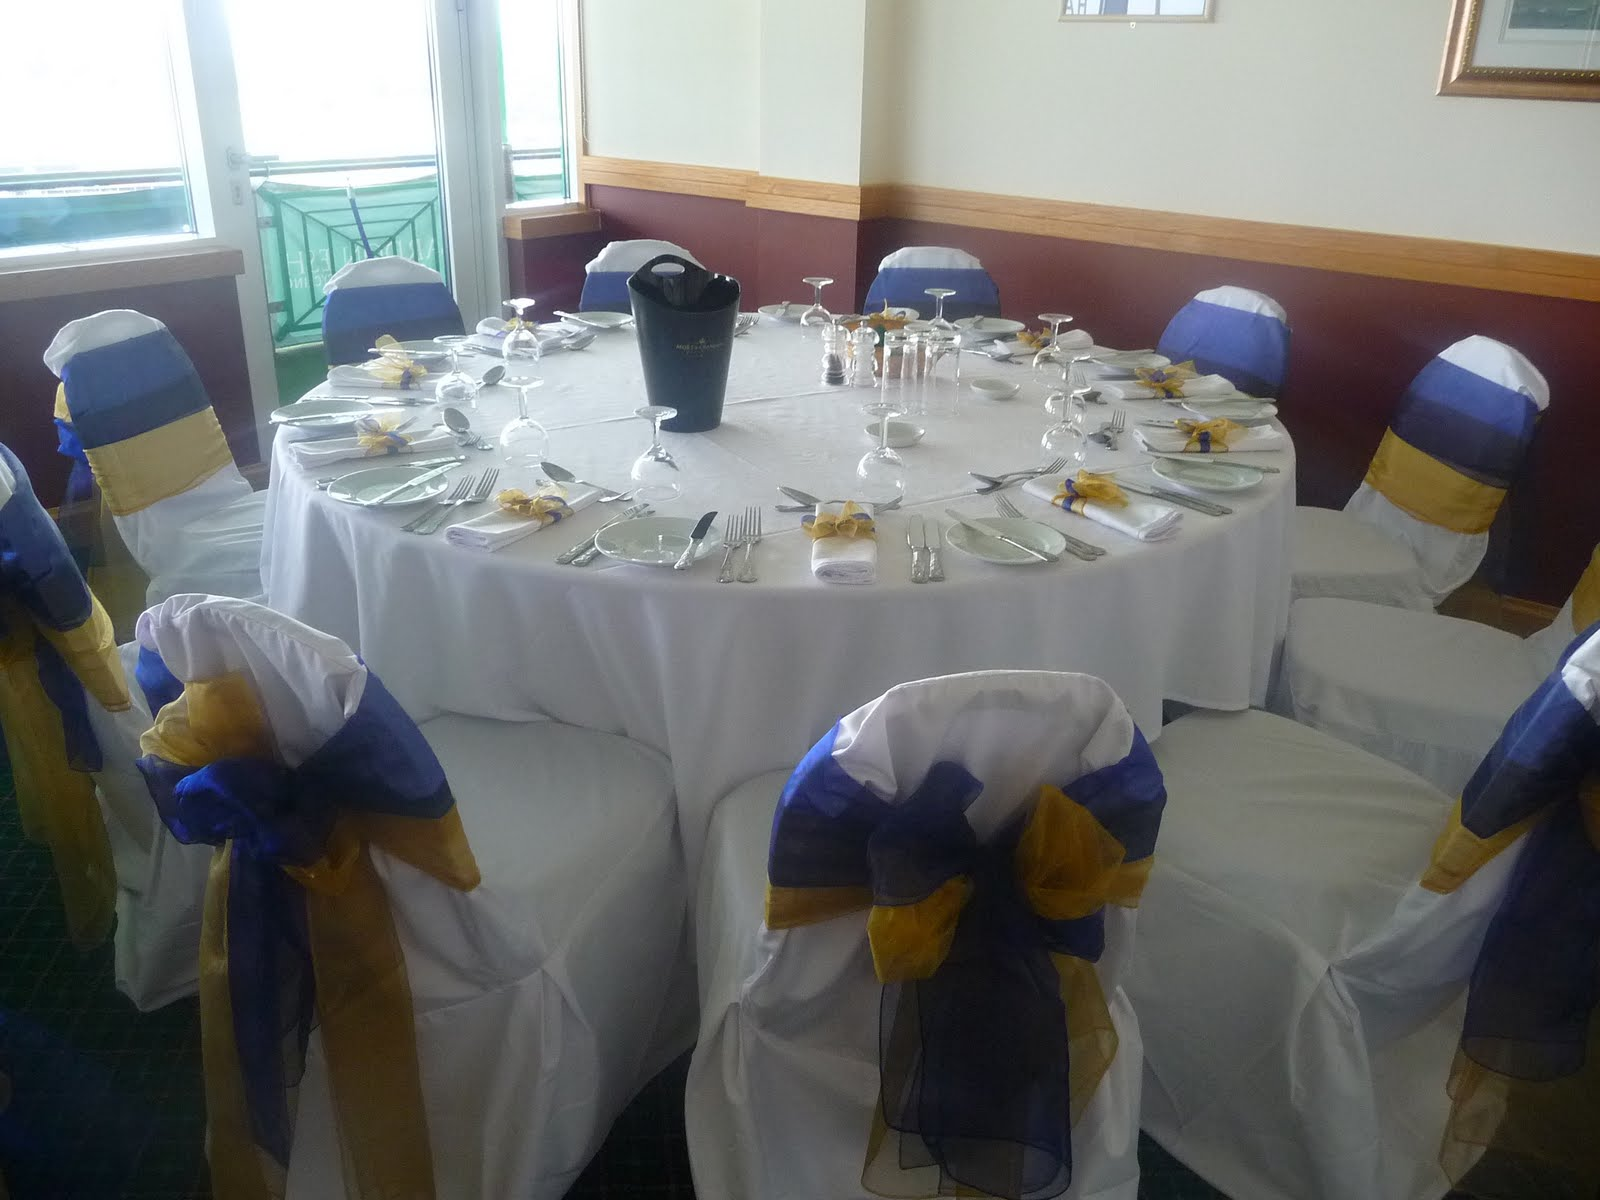 simply bows and chair covers newcastle for bathtub racing splendour northumberland hadrian healthcare box royal blue gold